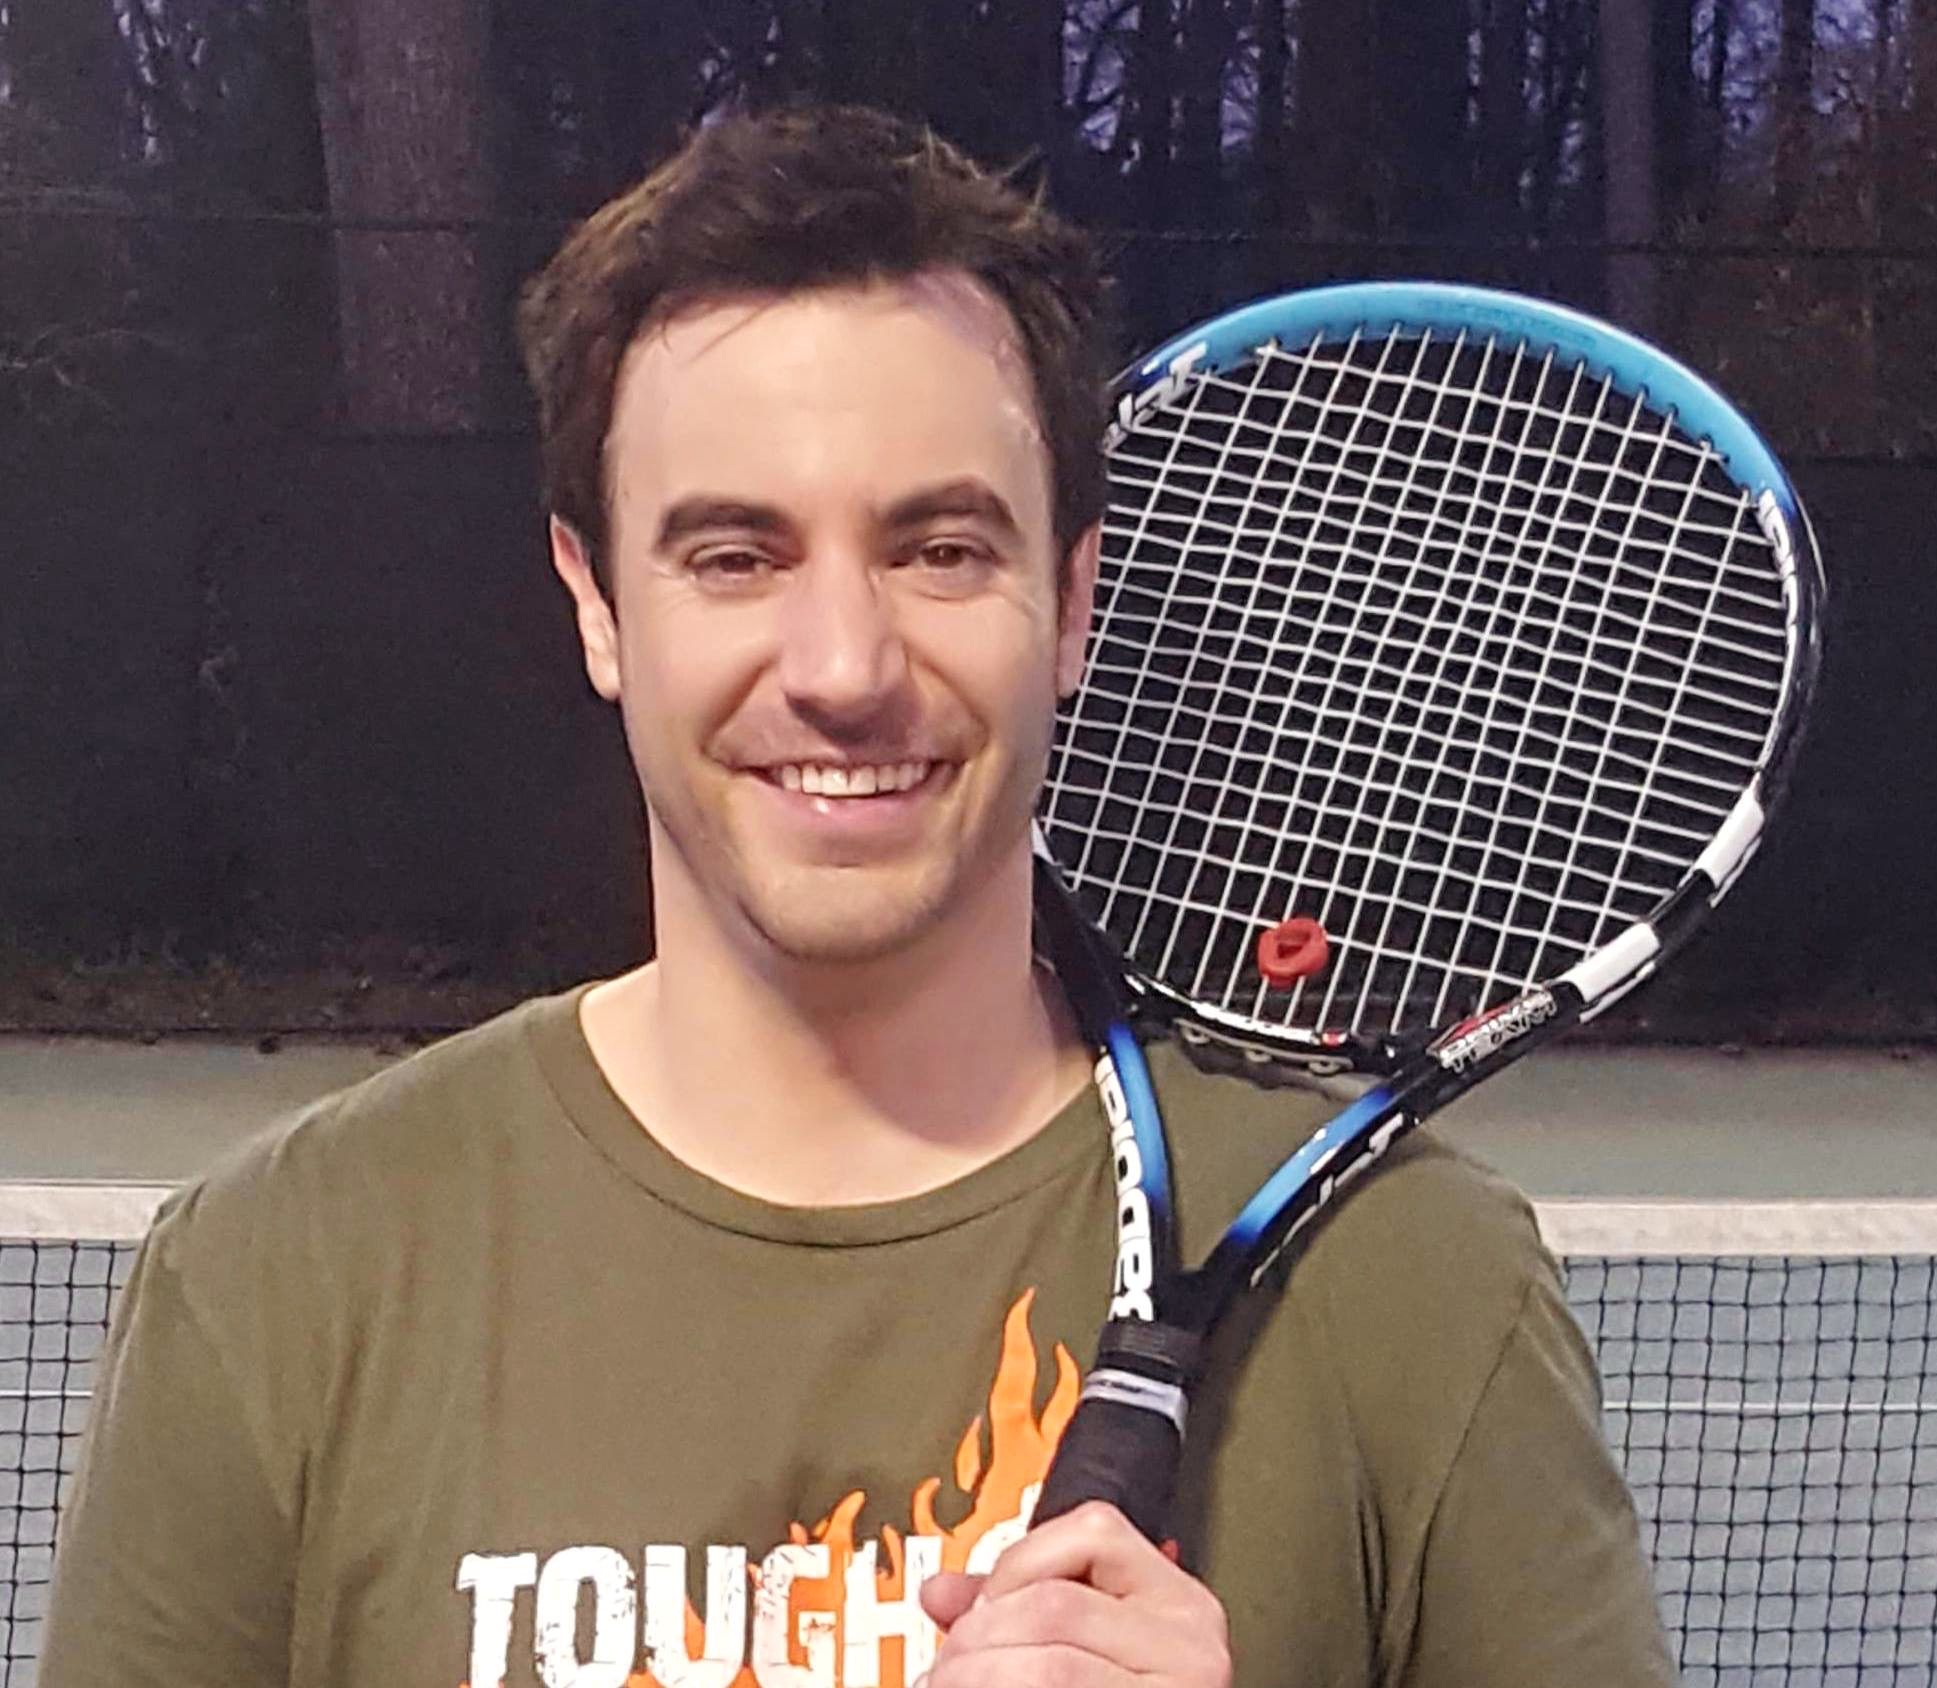 Anthony B. teaches tennis lessons in Atlanta, GA